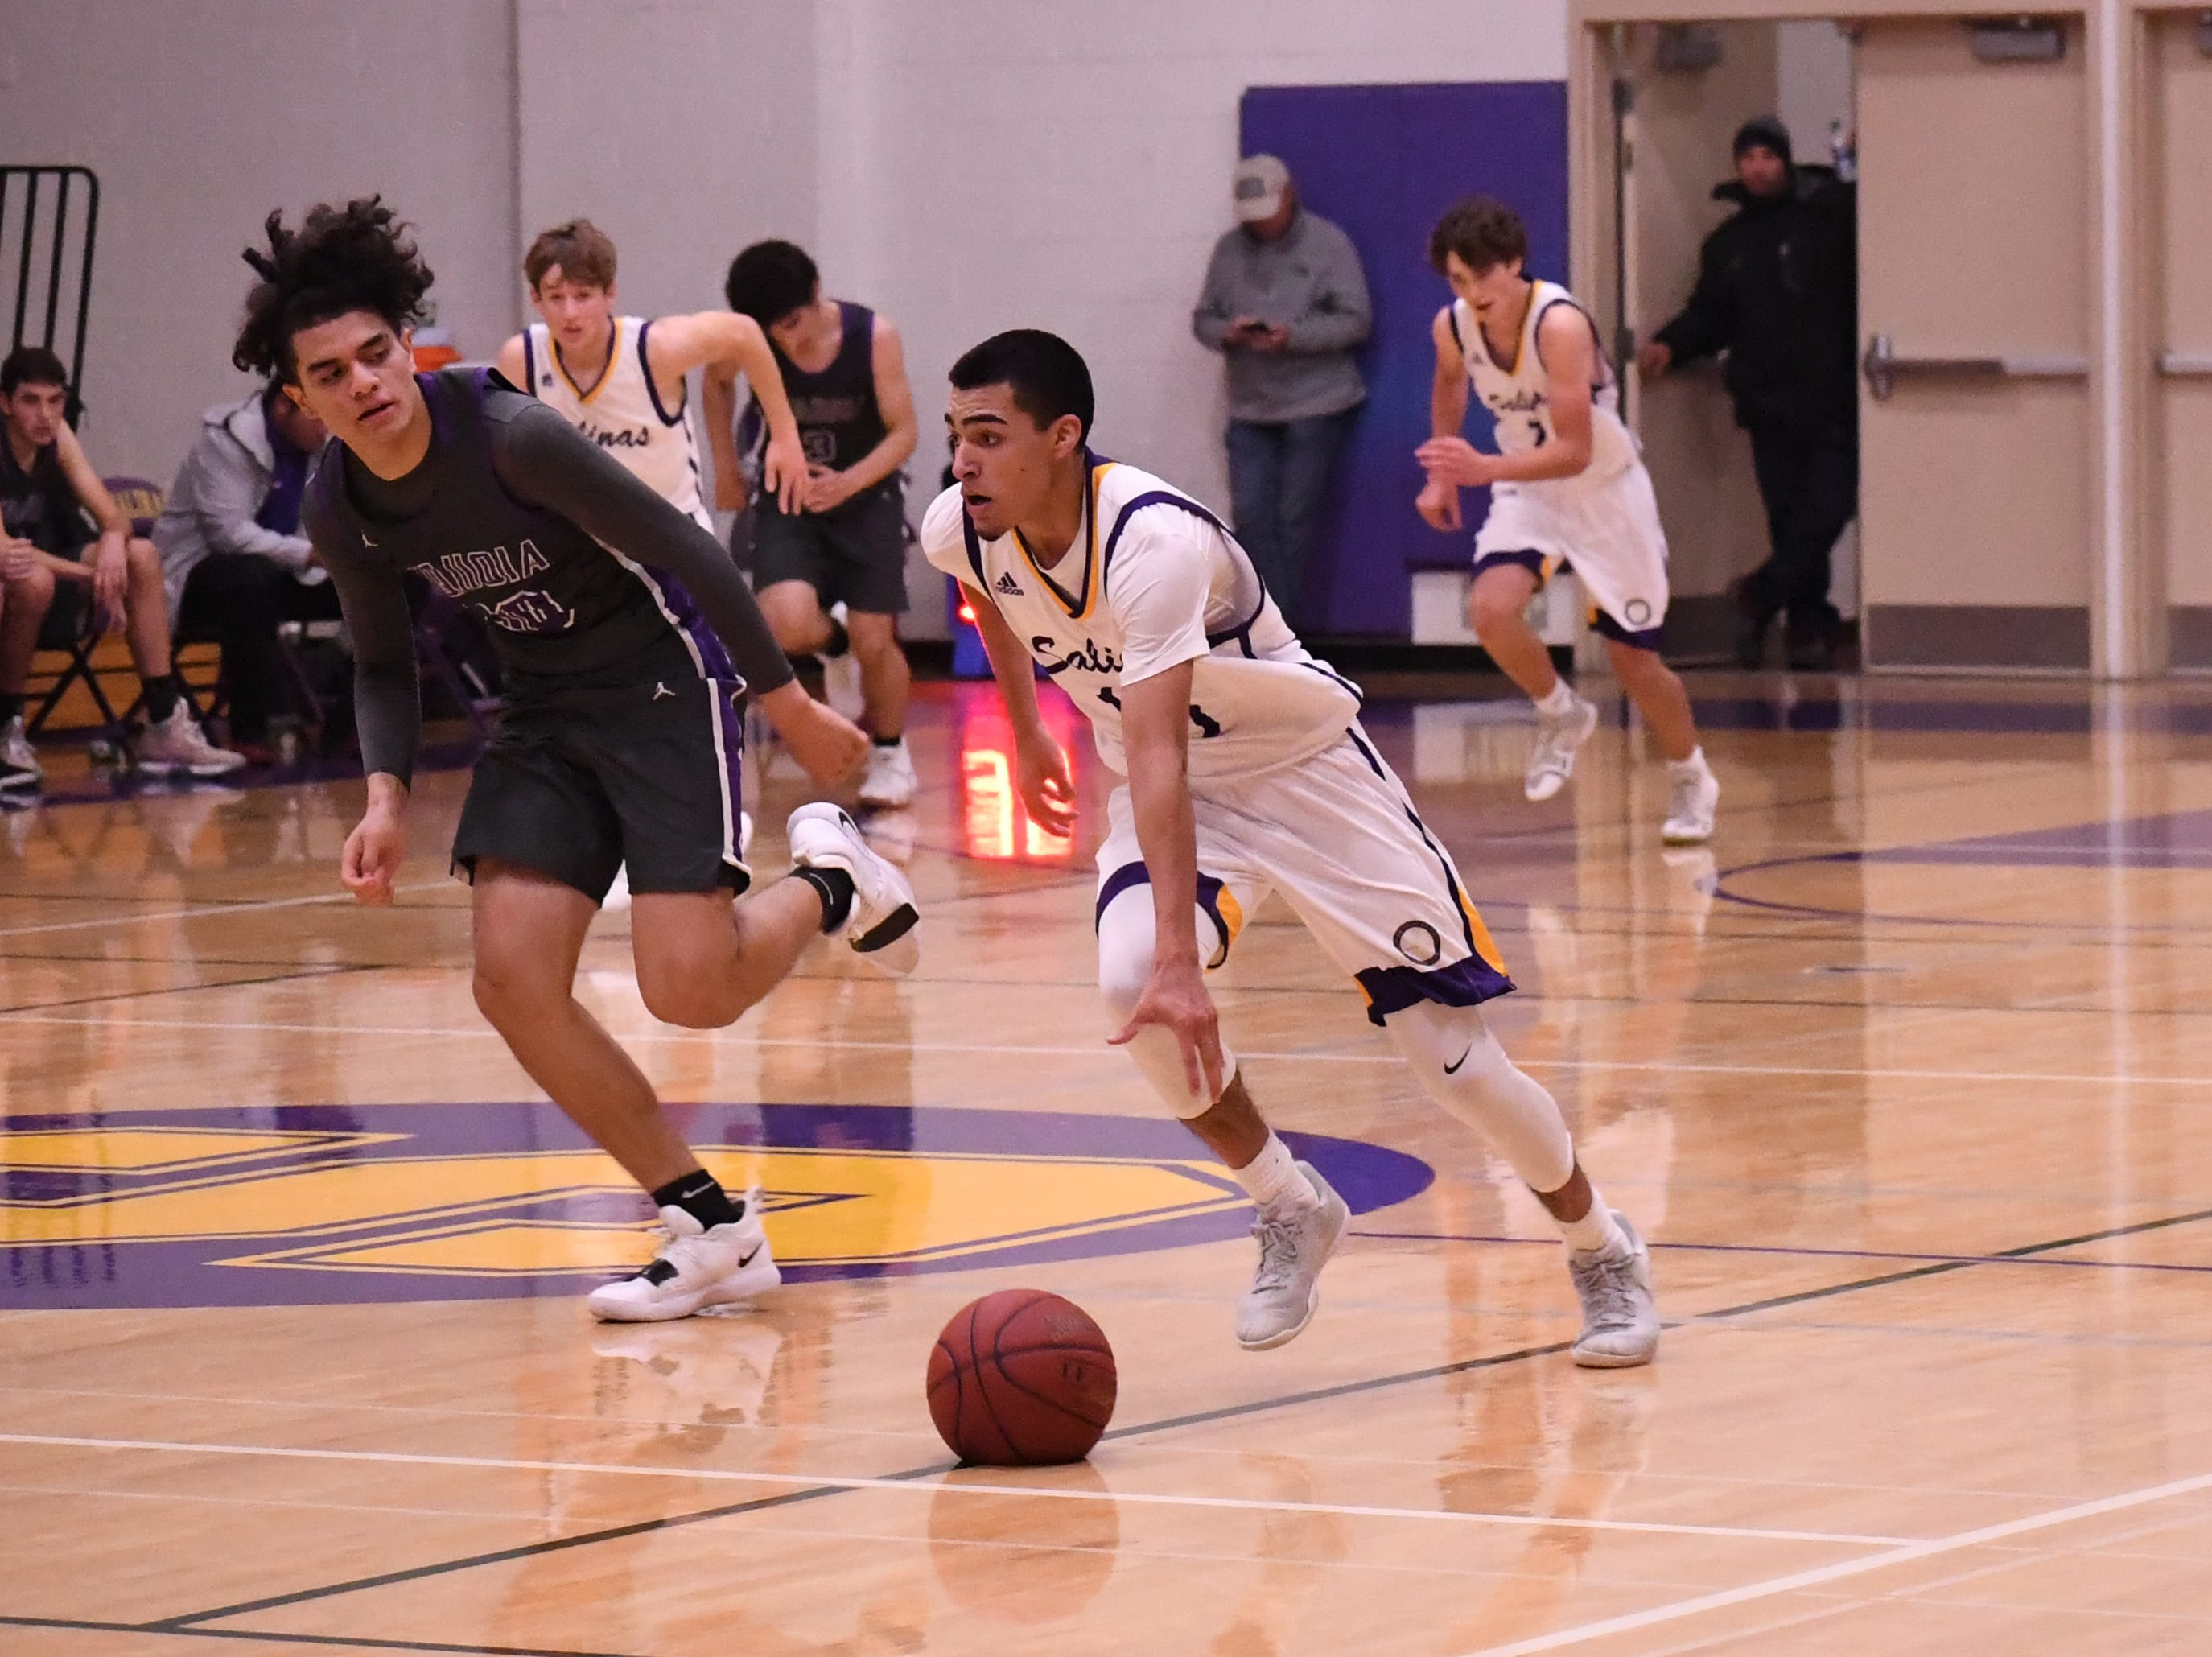 Guard AJ Saldana (10) sprints to the hoop after corralling a steal.